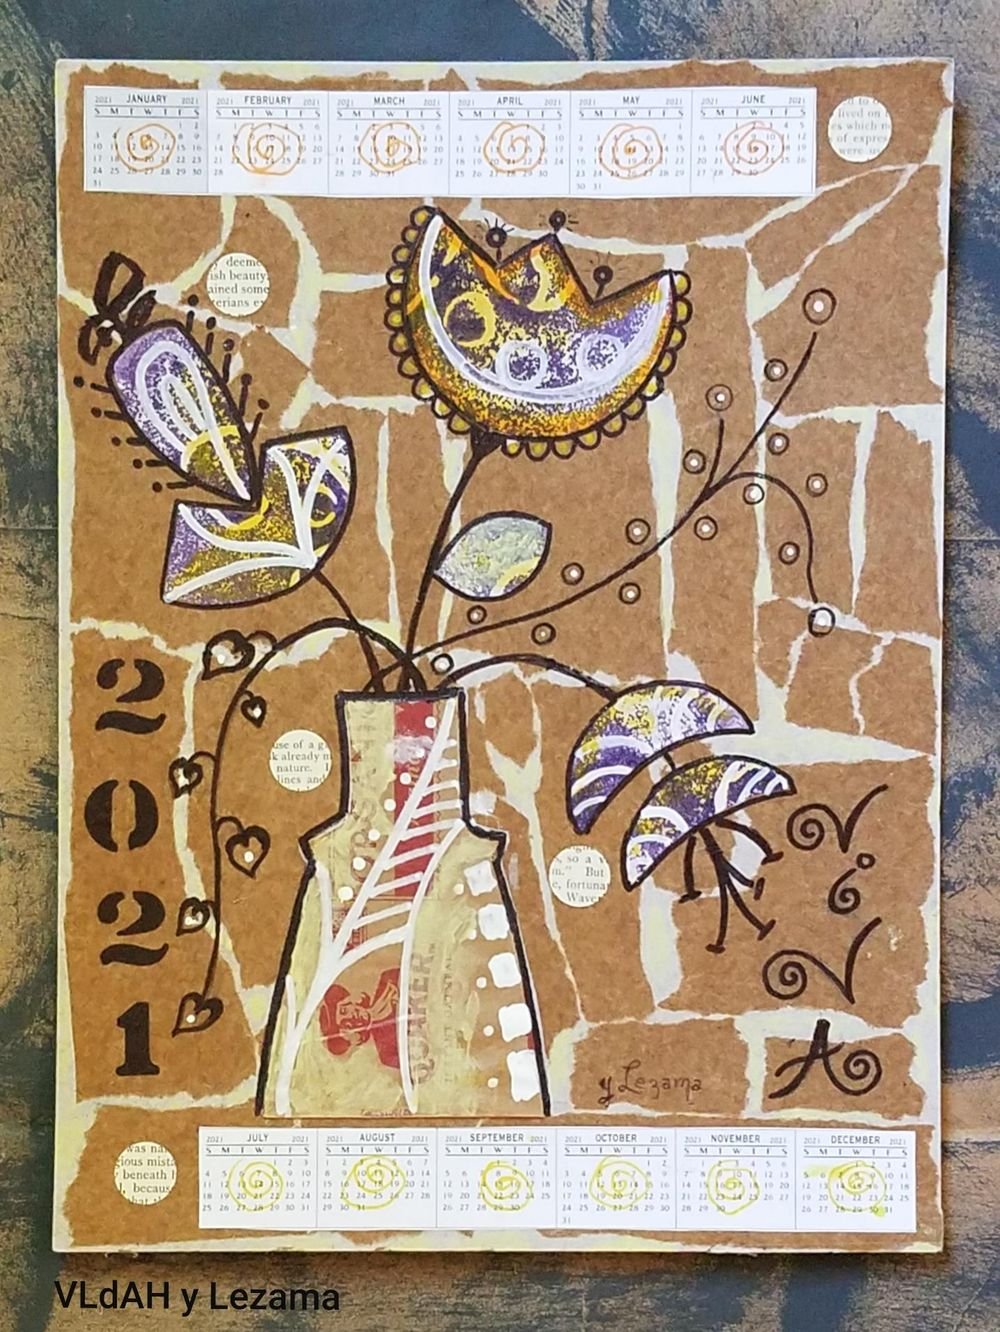 2021 Collage Calendar. - image 1 - student project